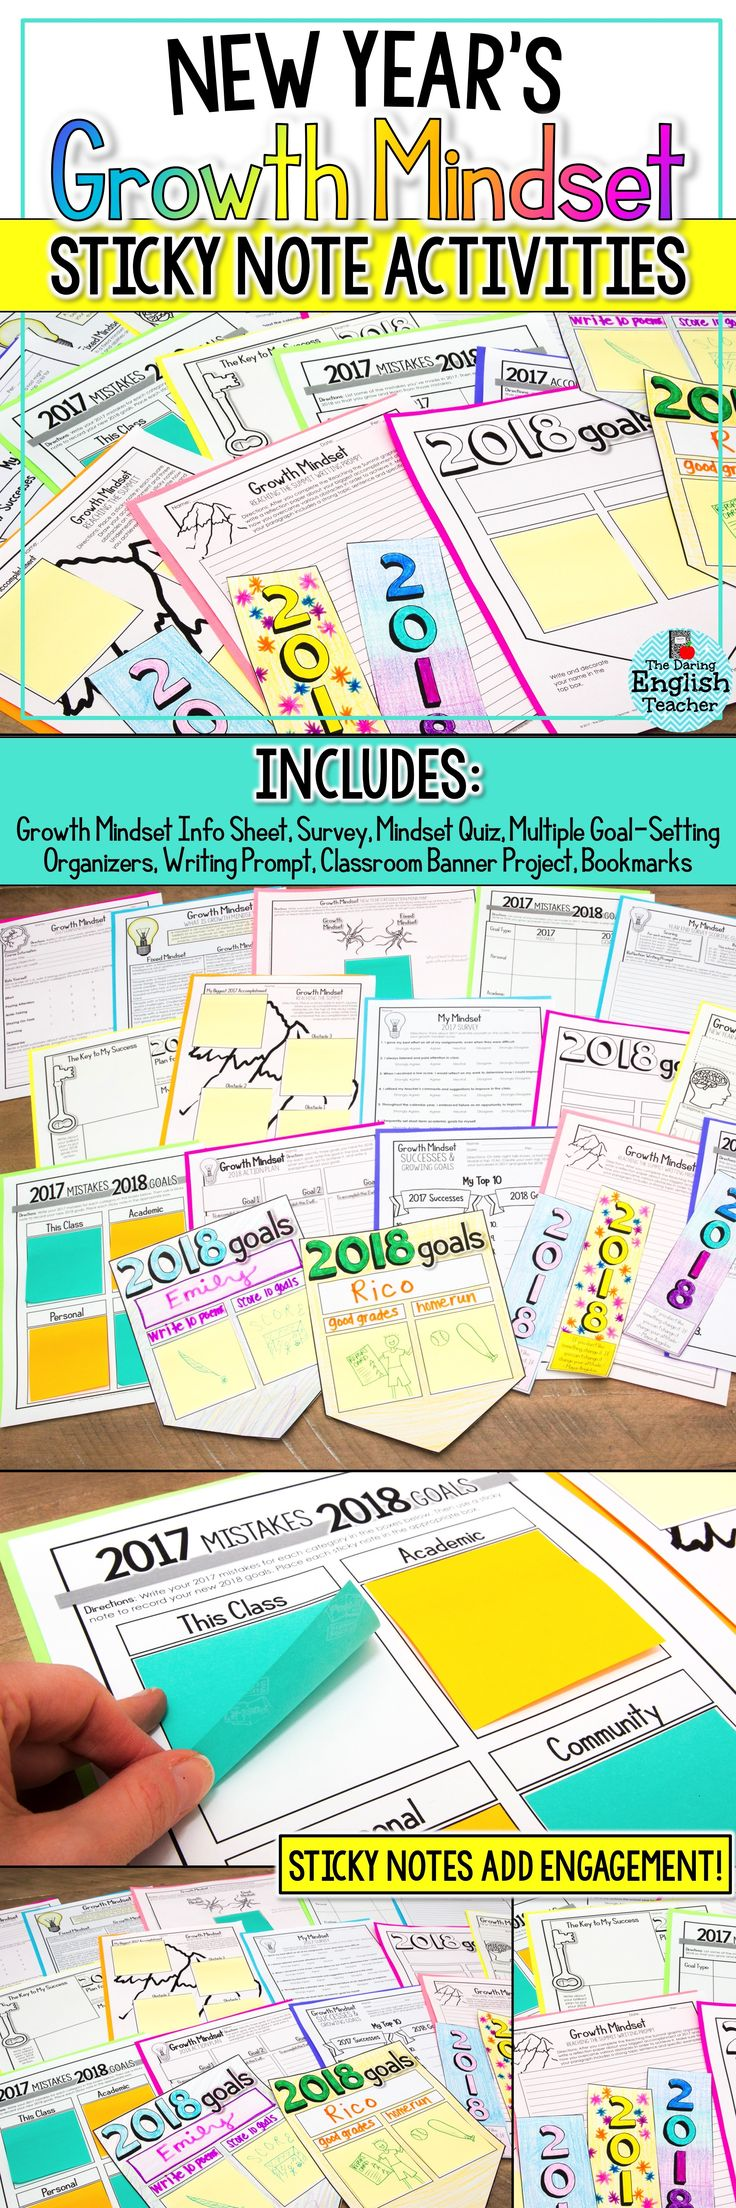 Help your students ring in the New Year with Sticky Note Growth Mindset Activities! These are ideal for goal-setting lesson plans and New Year's Resolutions!